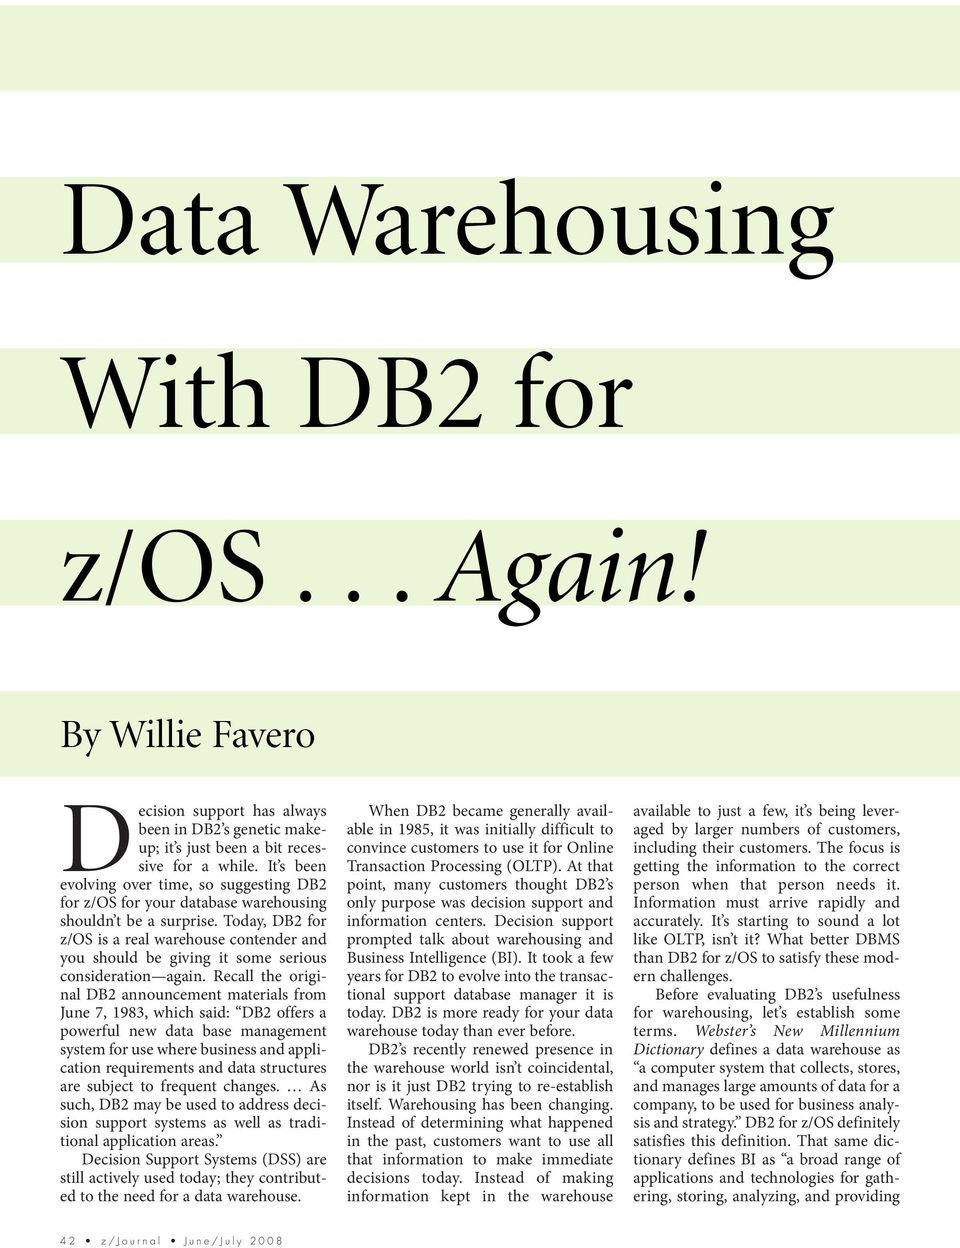 Today, DB2 for z/os is a real warehouse contender and you should be giving it some serious consideration again.